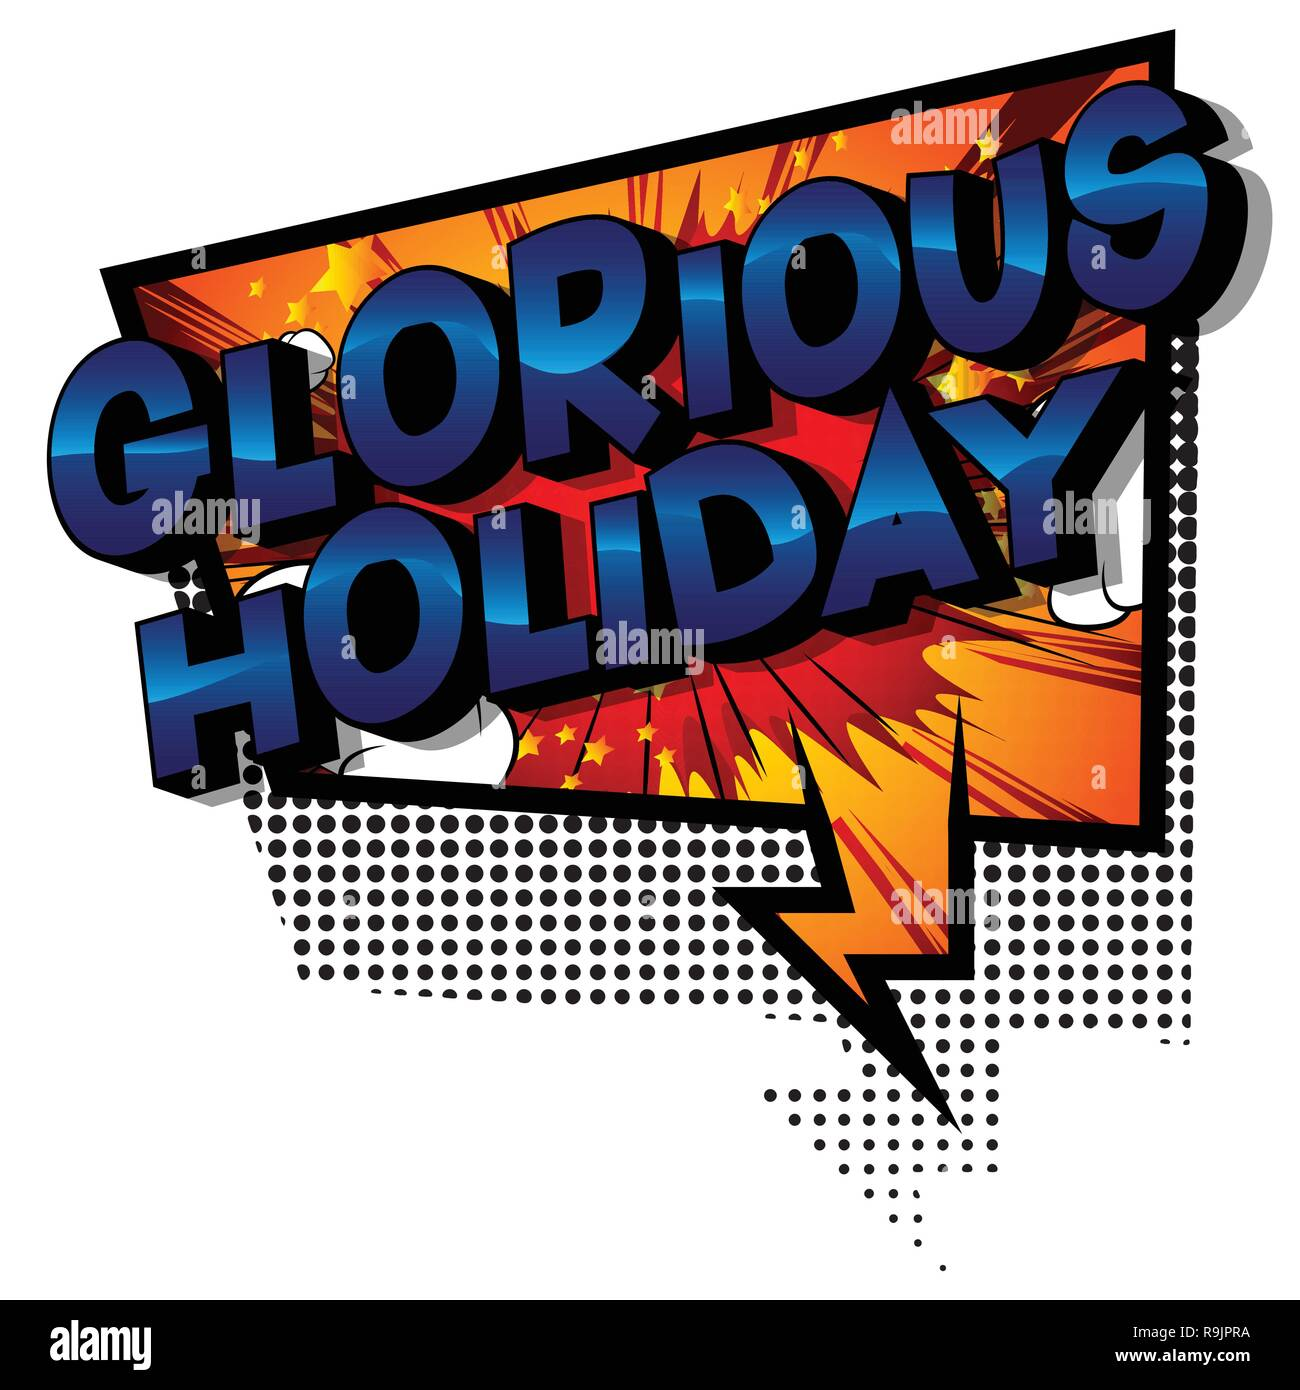 Glorious Holiday - Vector illustrated comic book style phrase on abstract background. - Stock Image